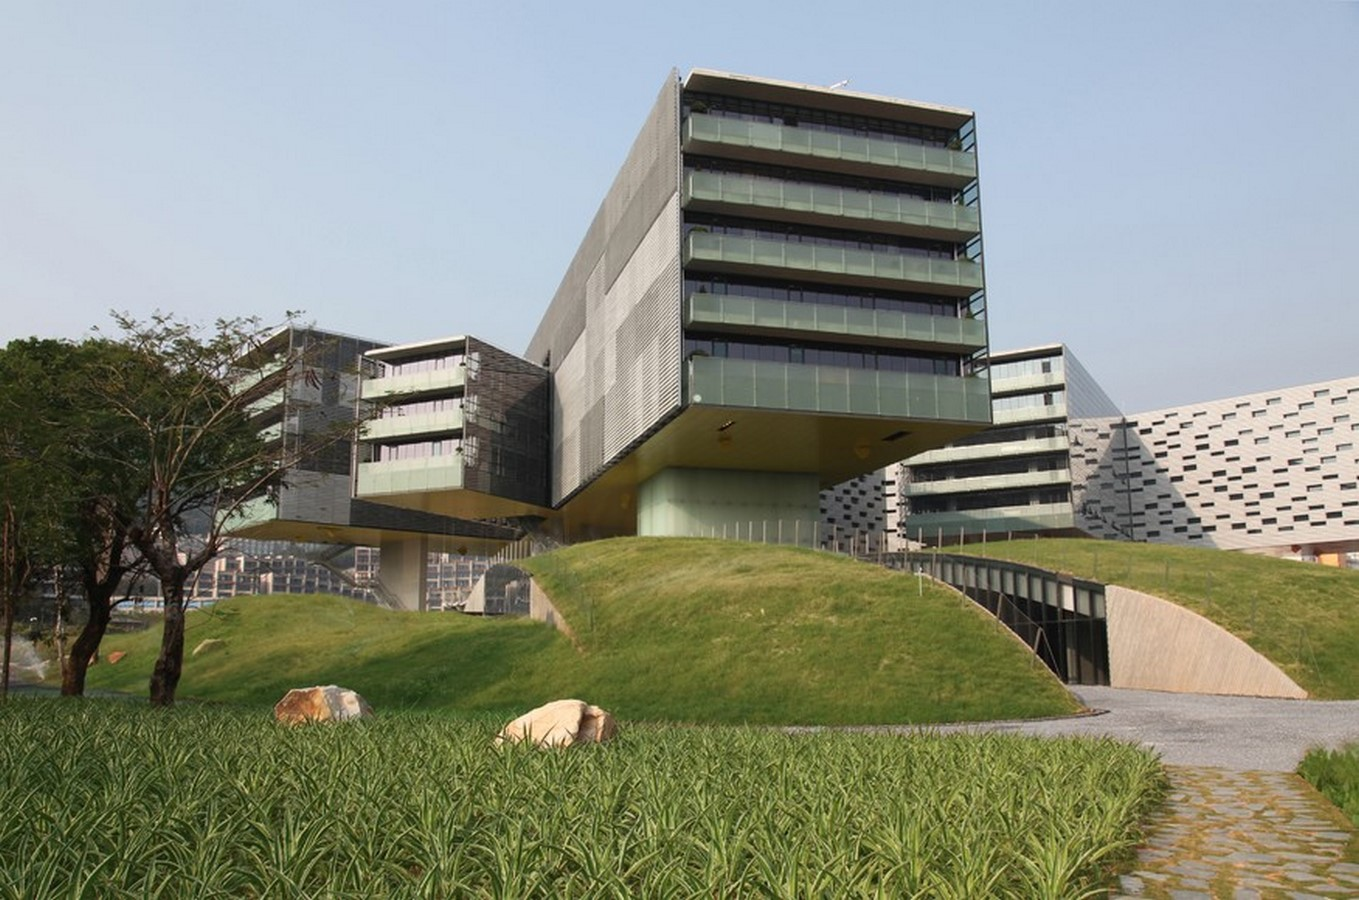 20 Most sustainable buildings in the world! -  Sheet8